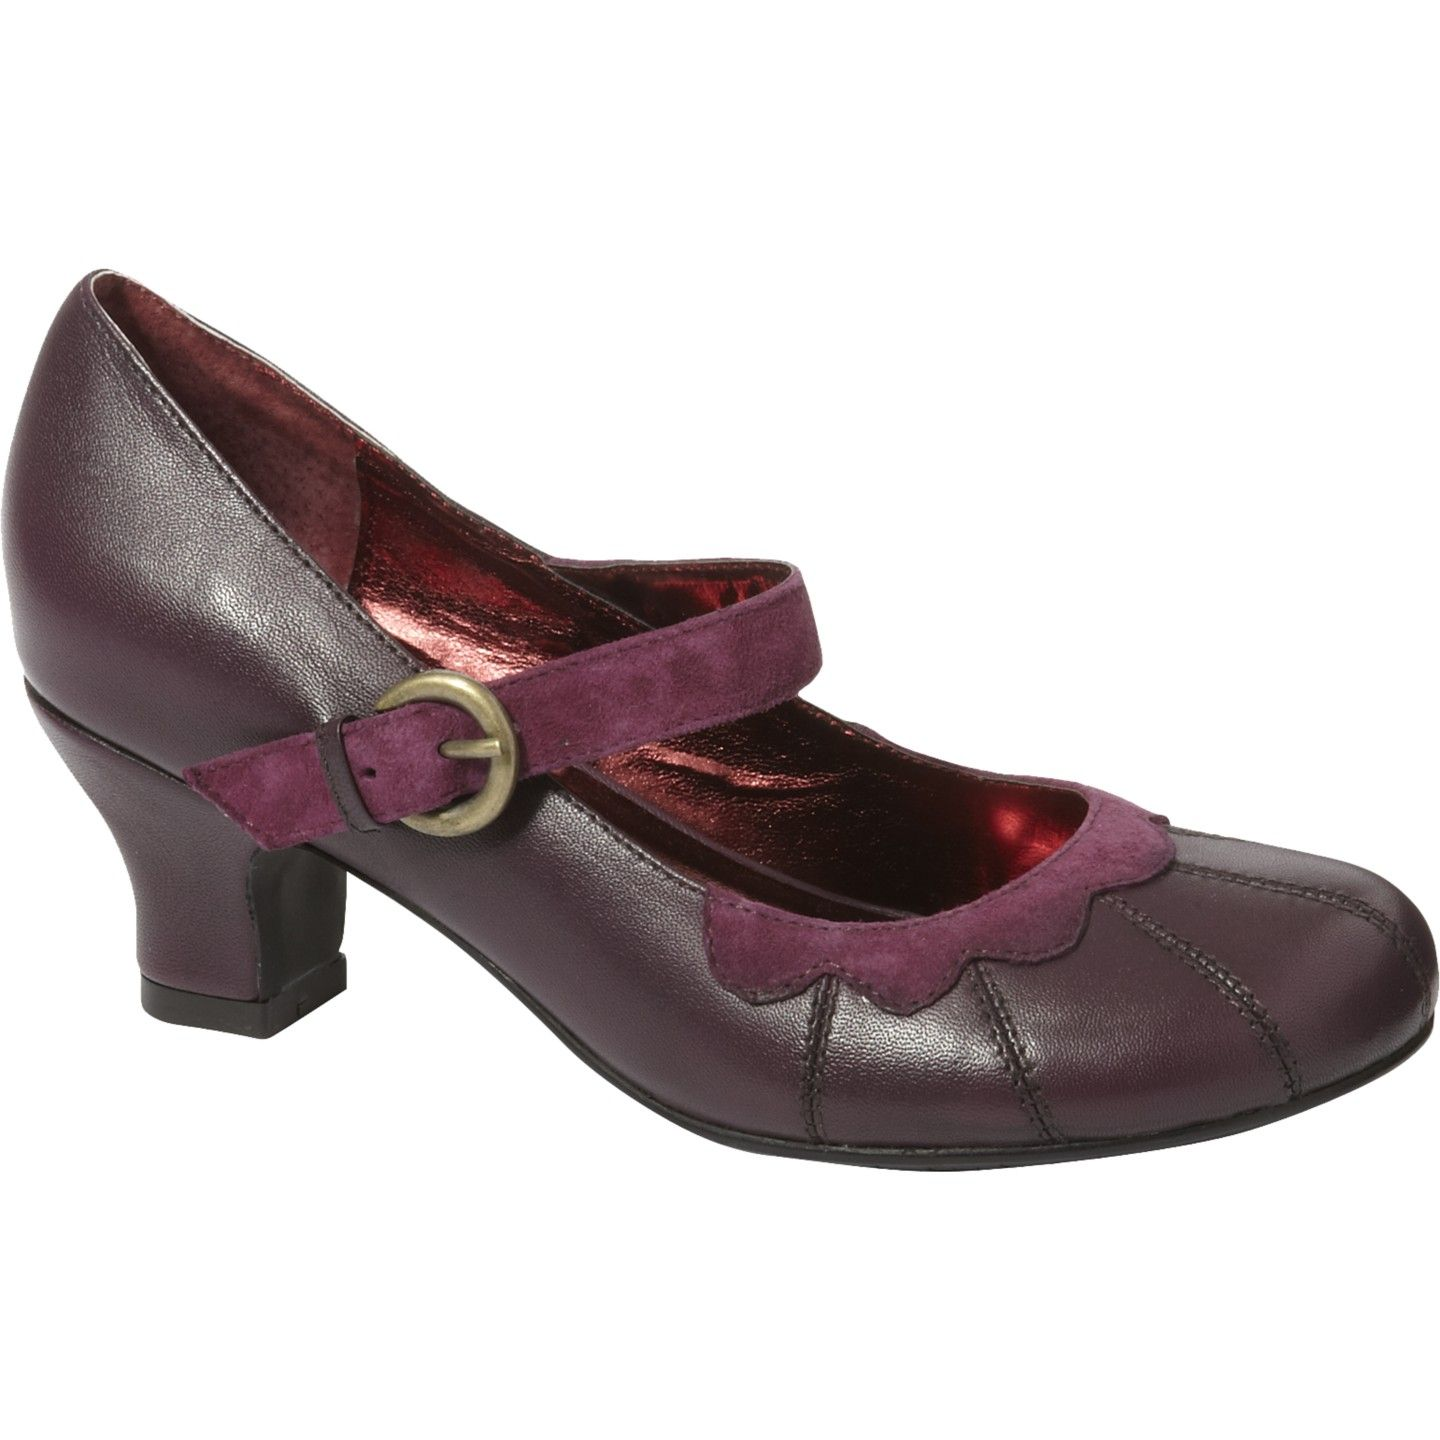 d6d7d48be536 Gayle Hush Puppies low heel shoes (purple)